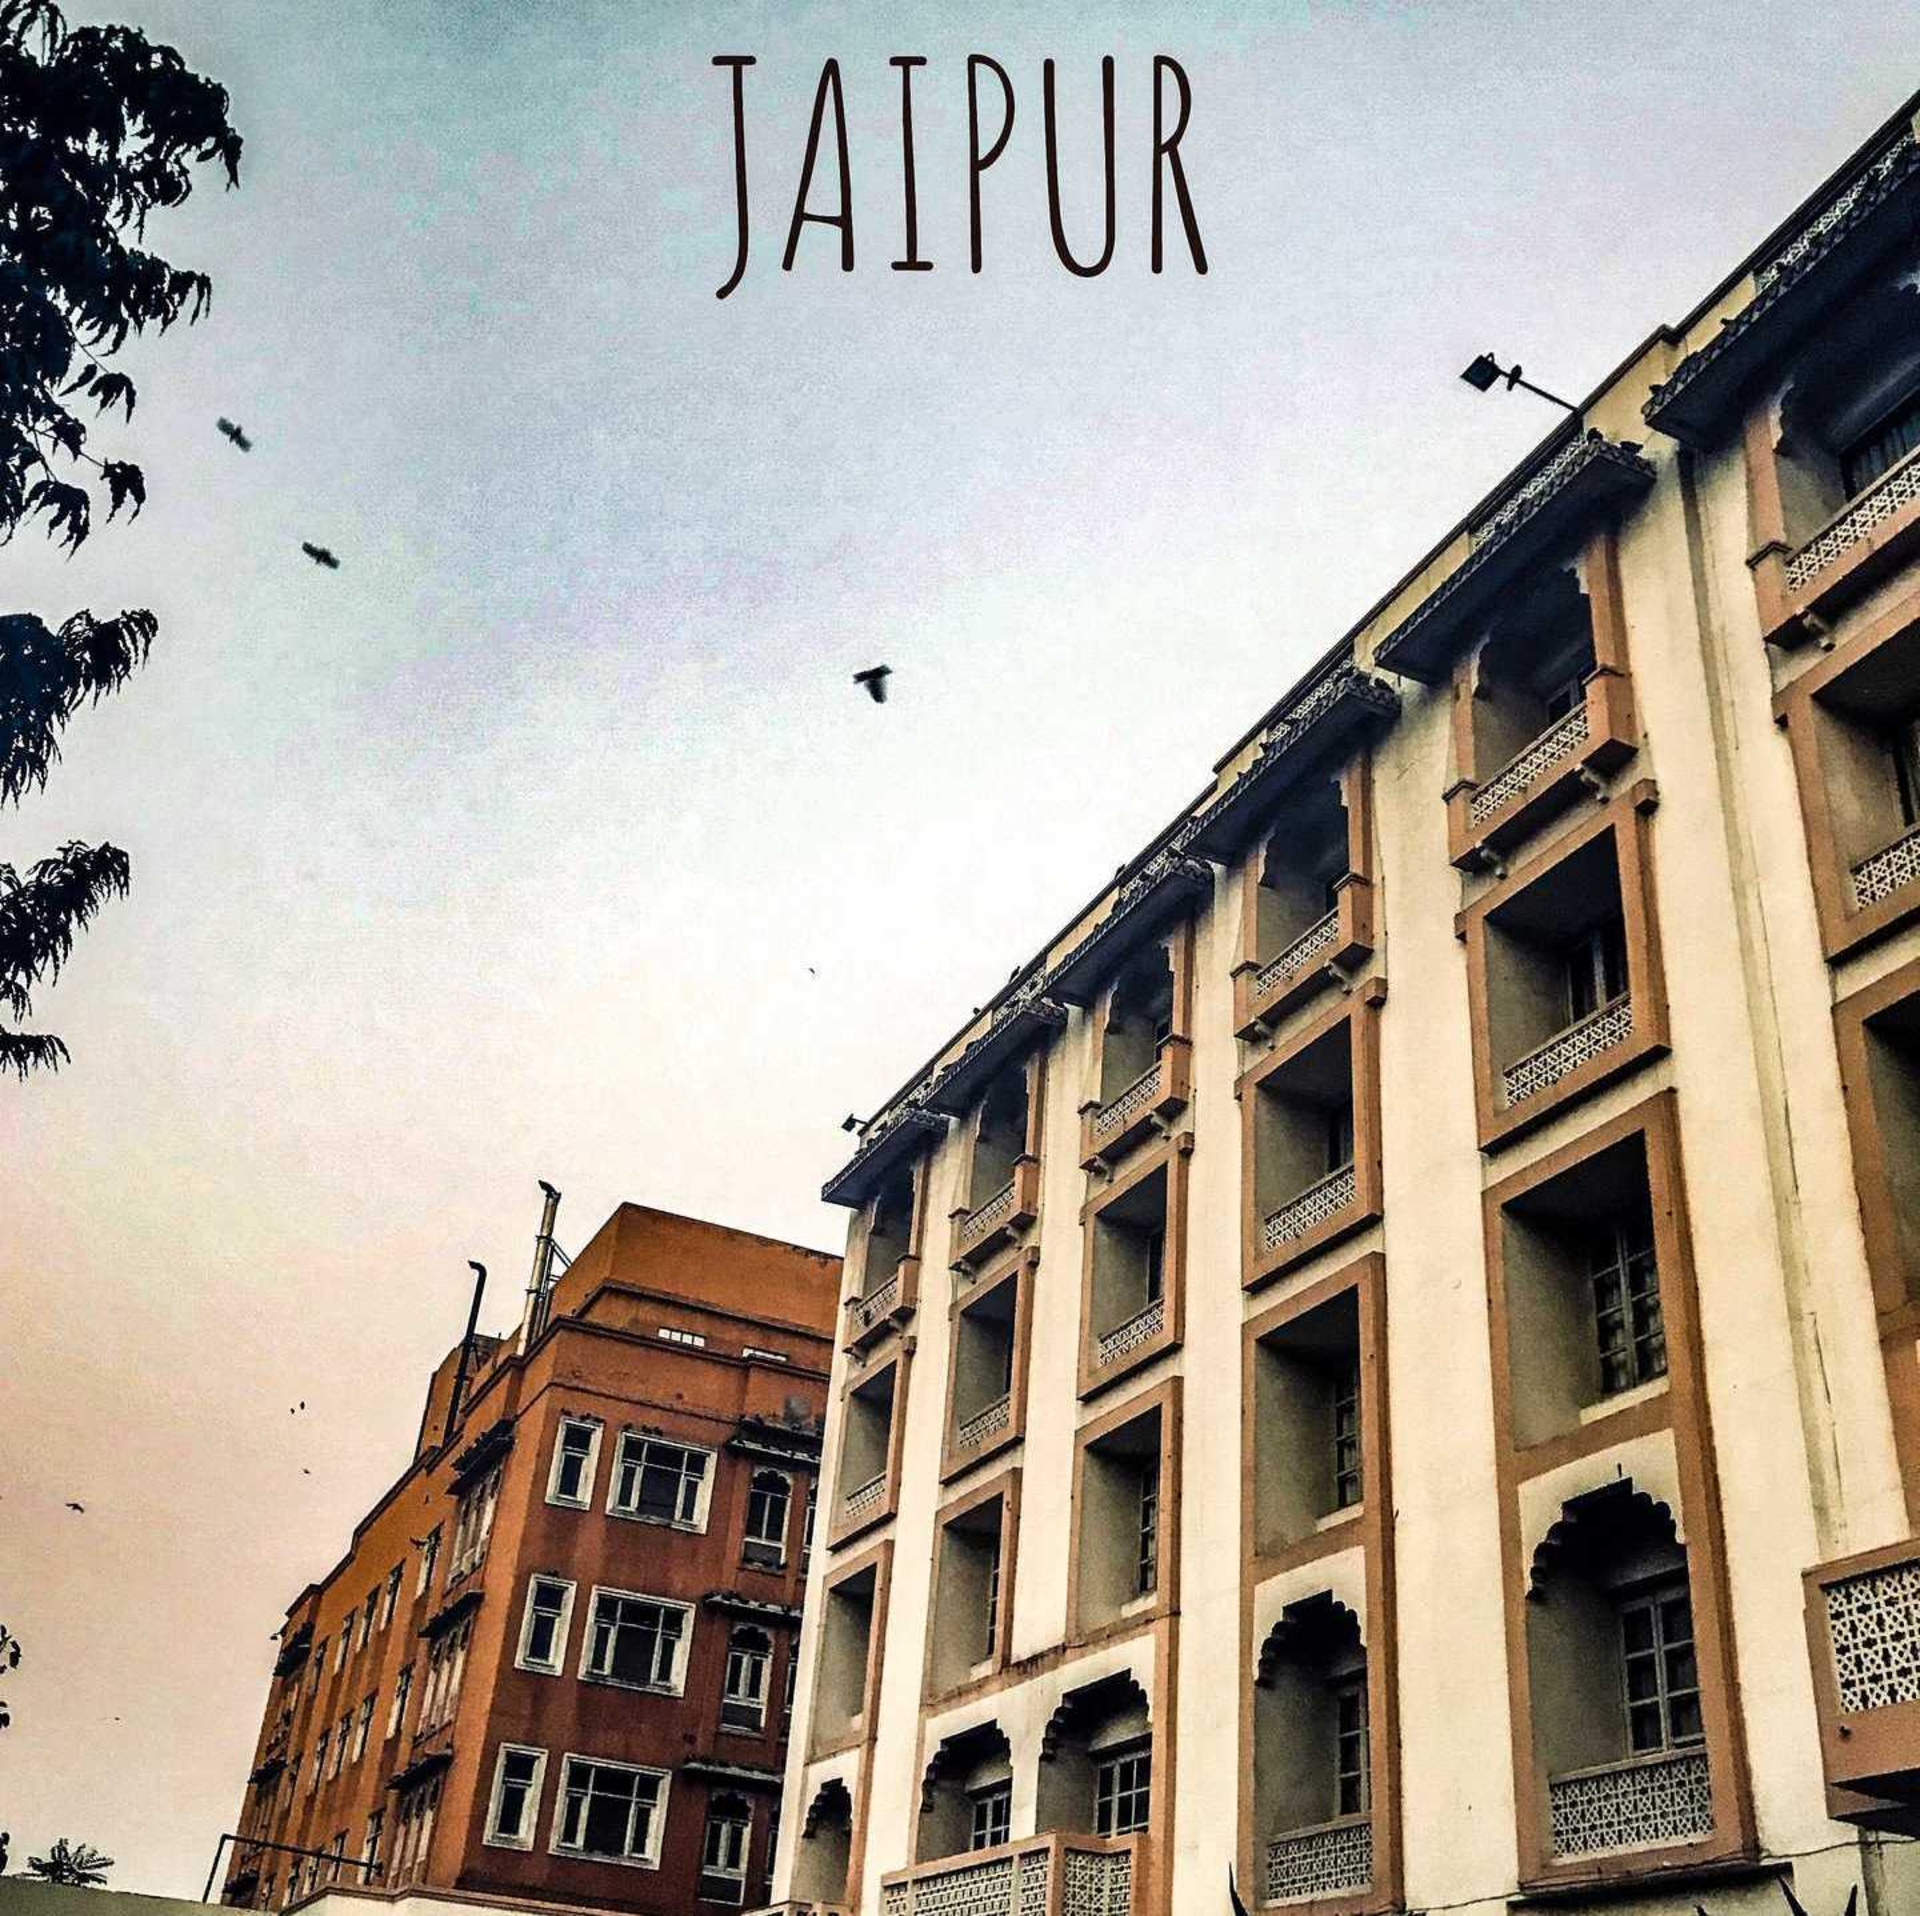 Explore The Beauty Of Jaipur In 3 days image